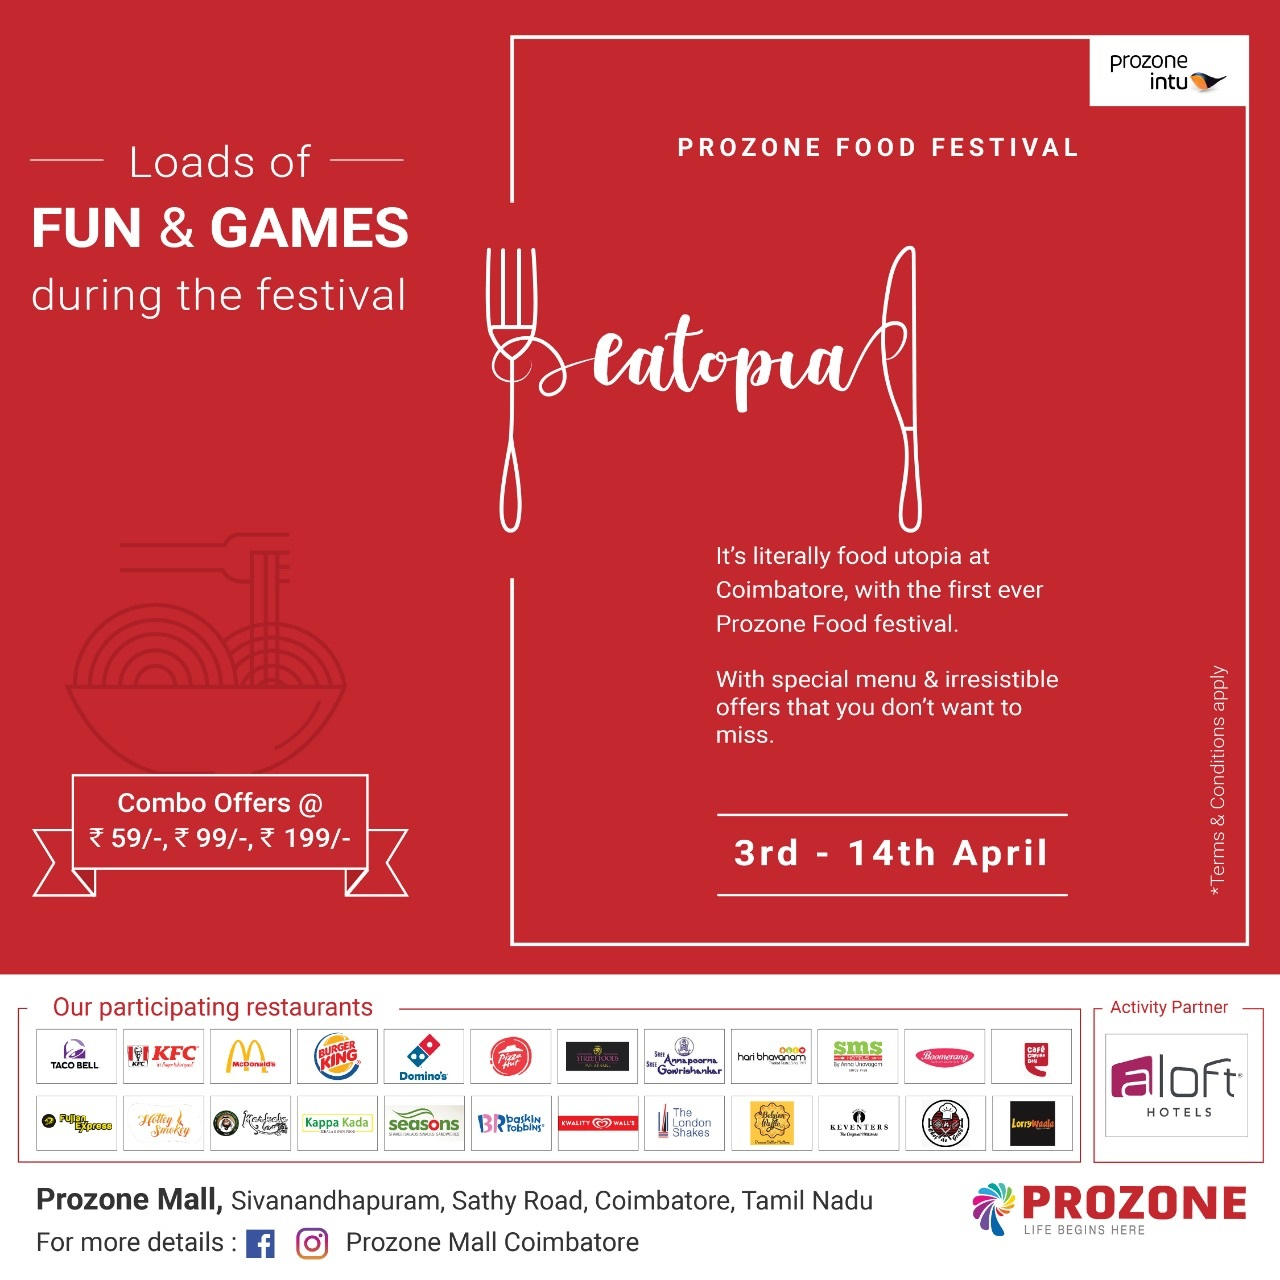 First Ever Prozone Food Festival - EATOPIA